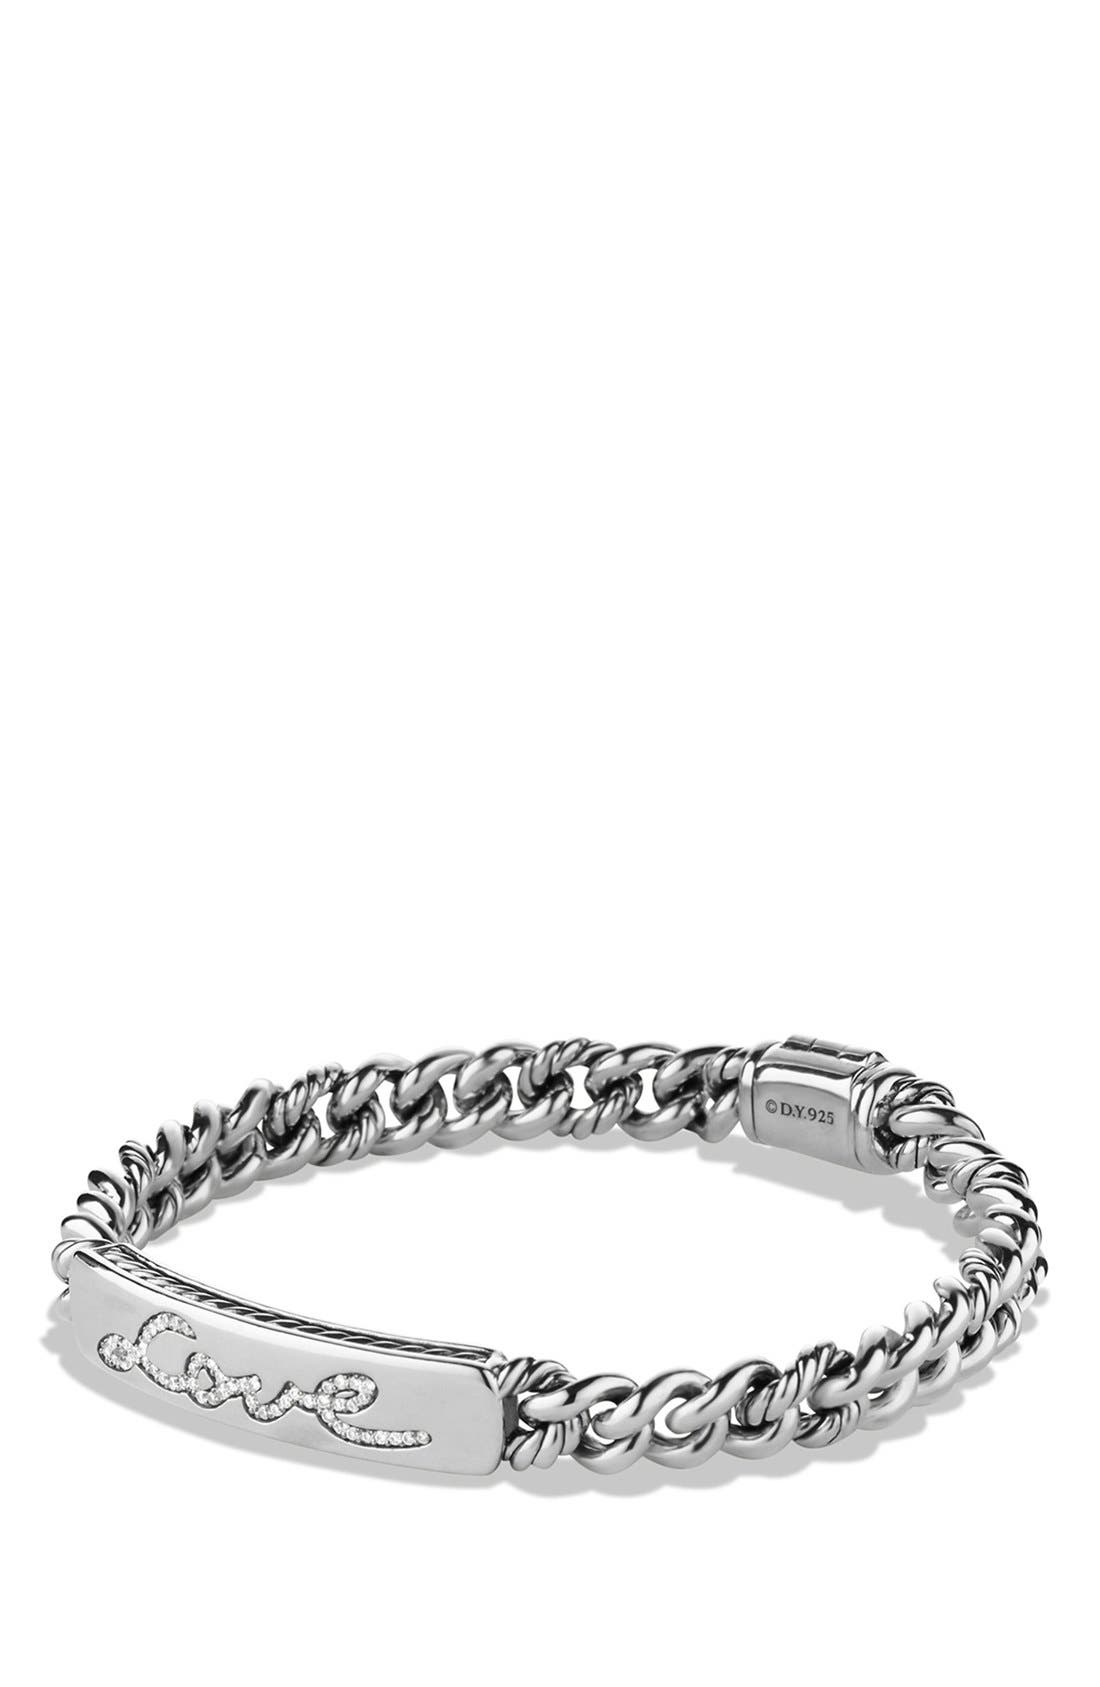 Alternate Image 1 Selected - David Yurman 'Petite Pavé' Love ID Bracelet with Diamonds